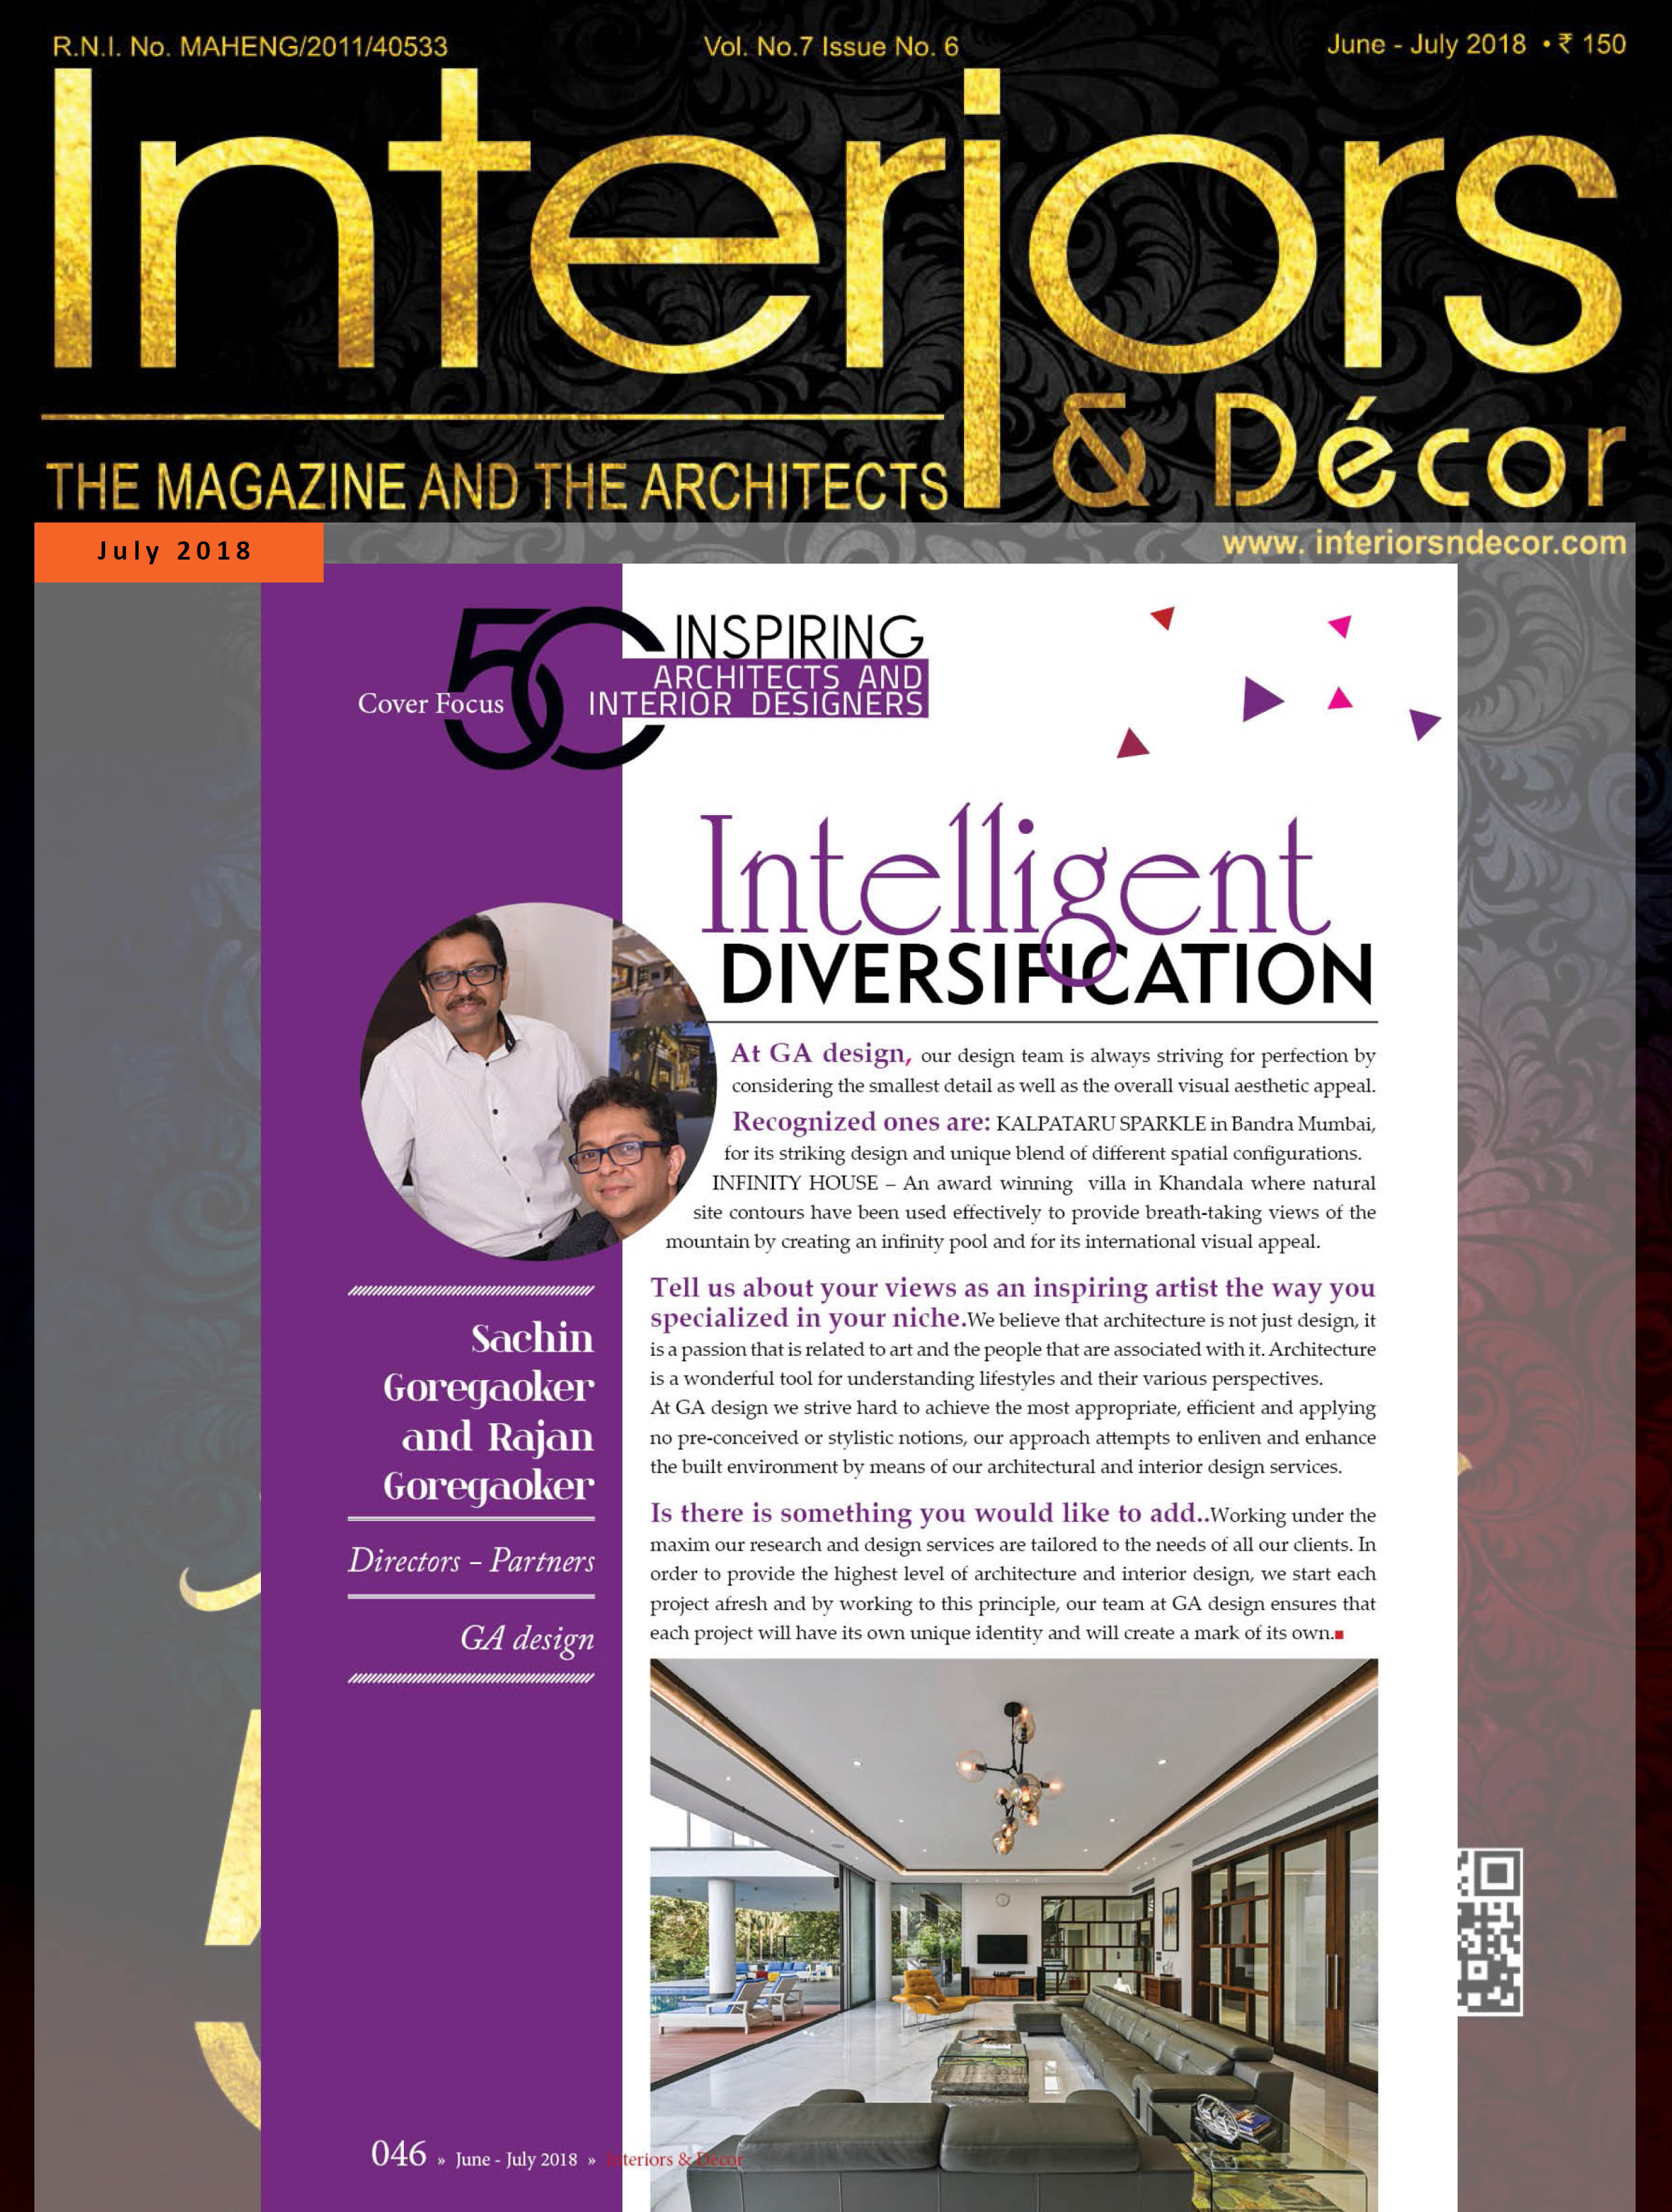 interiors n decor anniv, july 2018